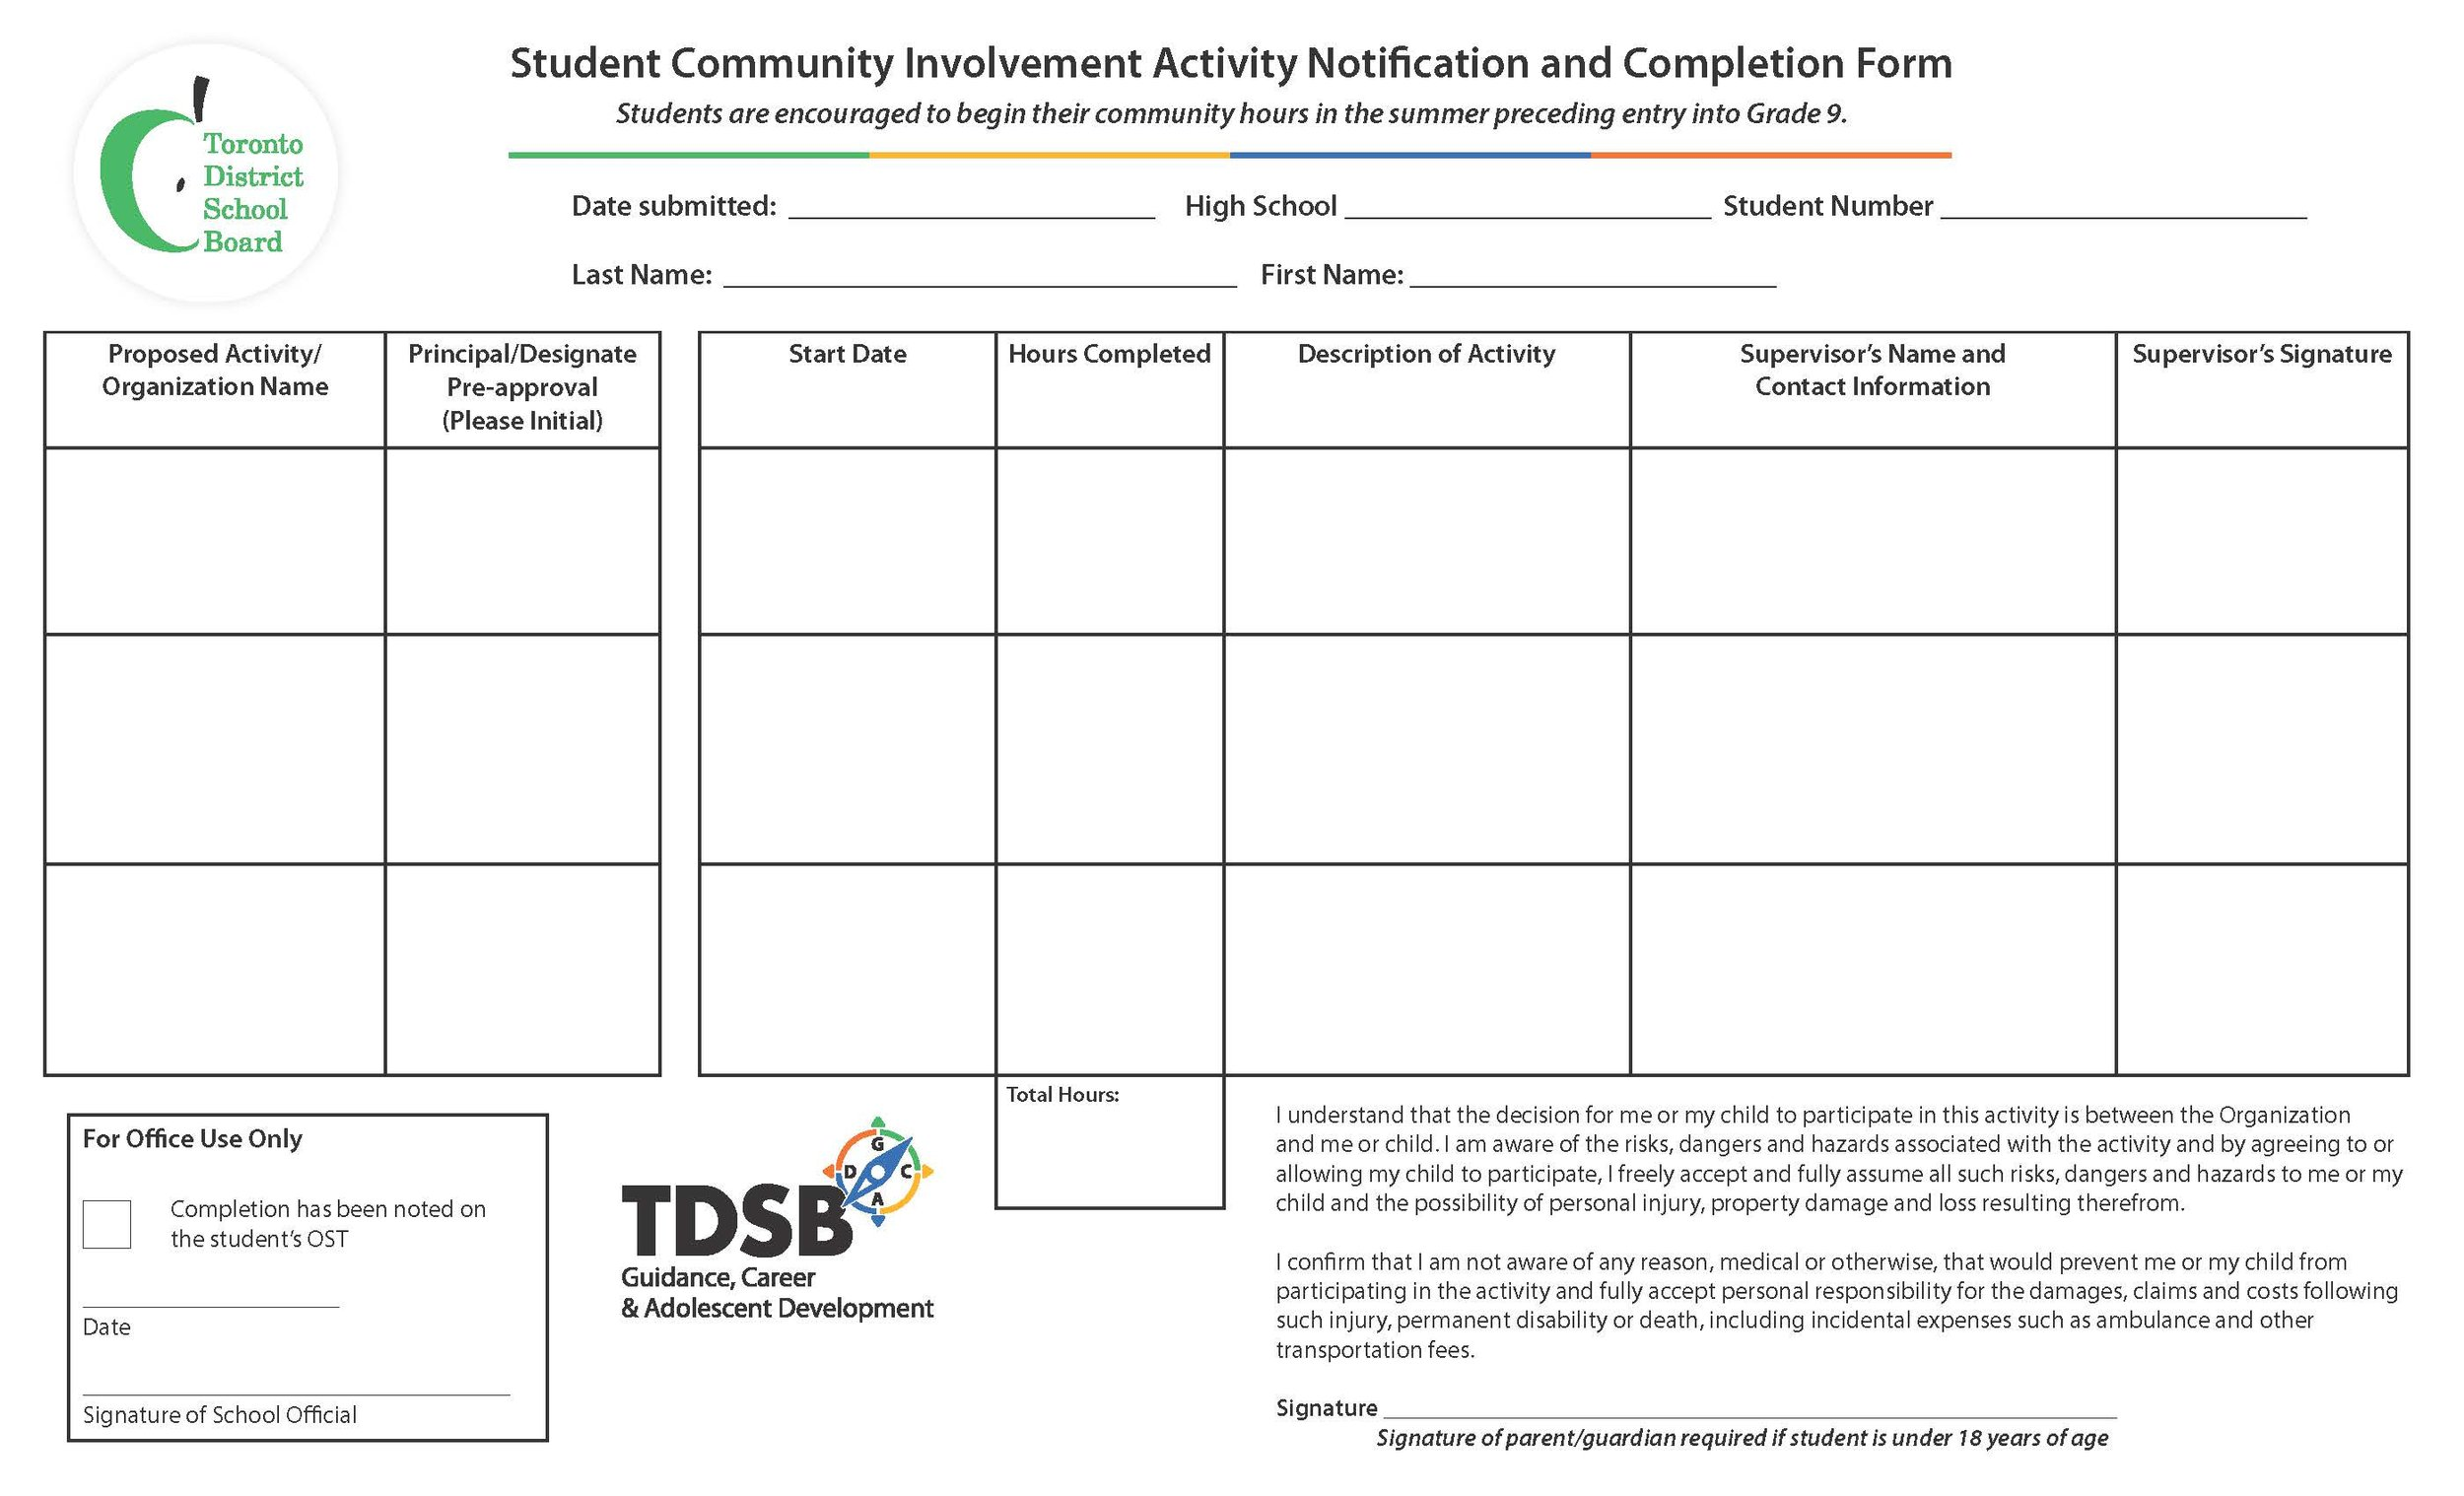 Community Involvement Activity Notification  Completion Form (3)_Page_1.jpg